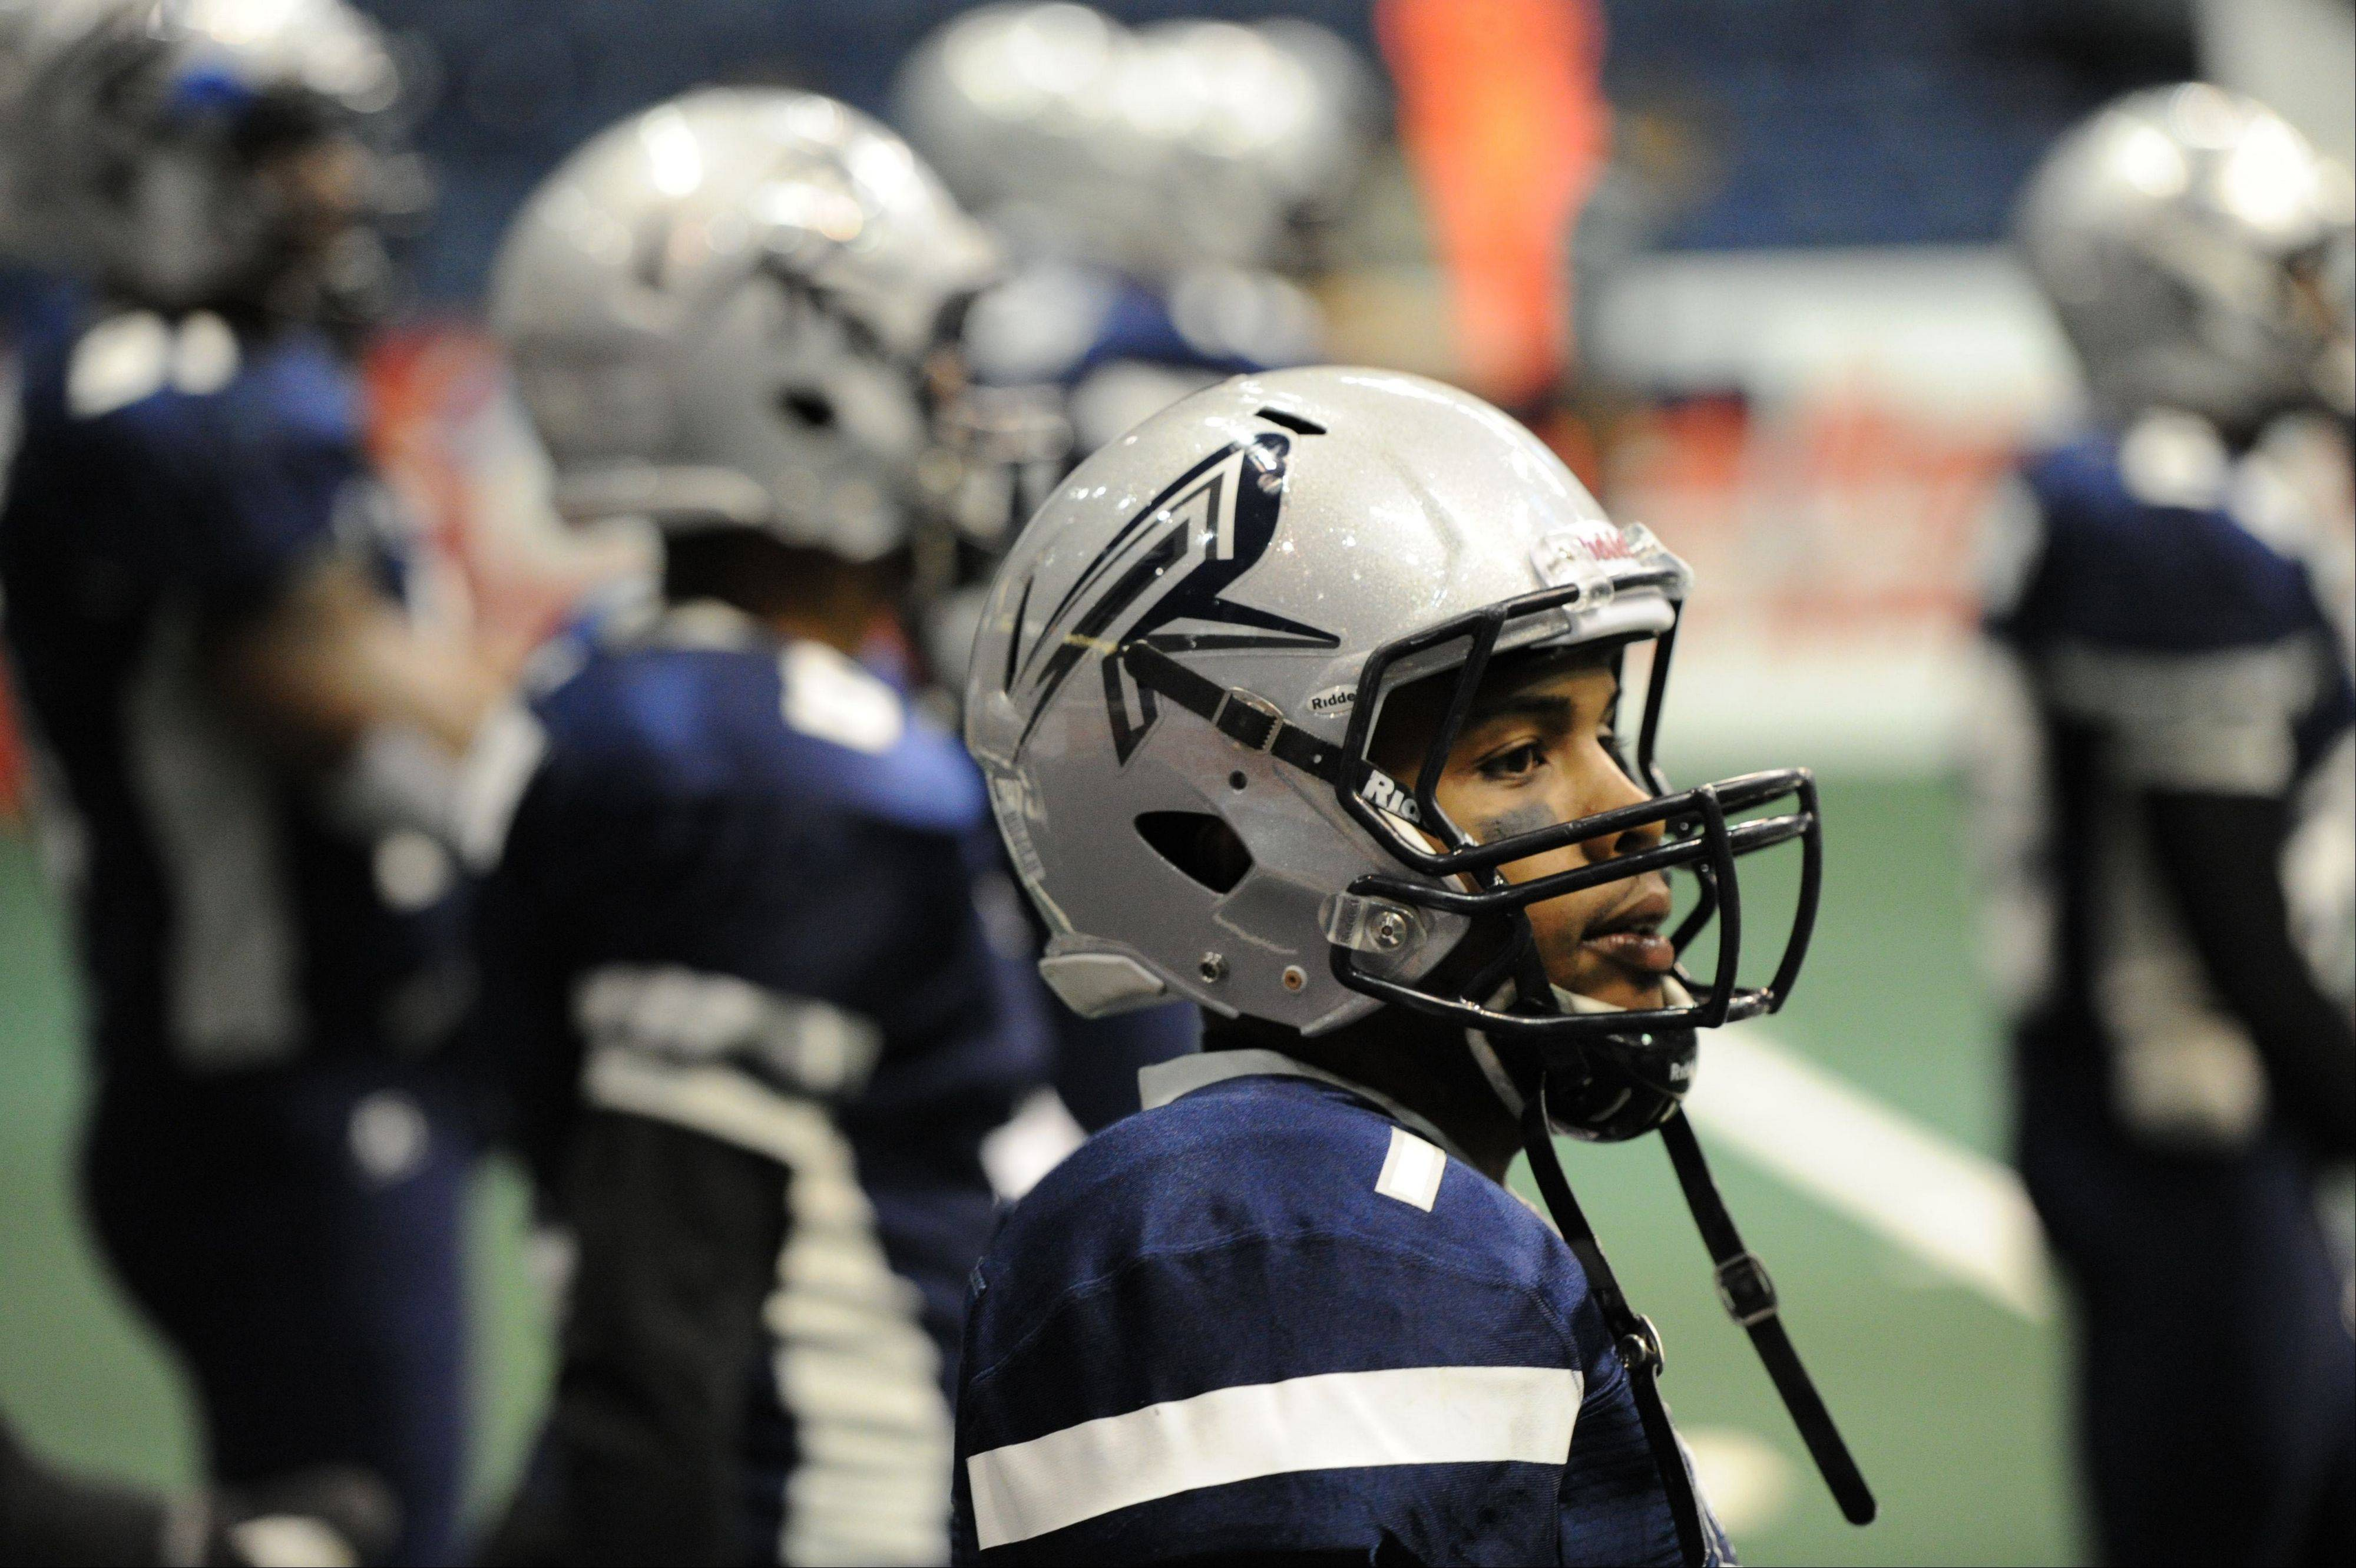 Wide receiver Reggie Gray and his Chicago Rush teammates will be playing for a new ownership group next season.